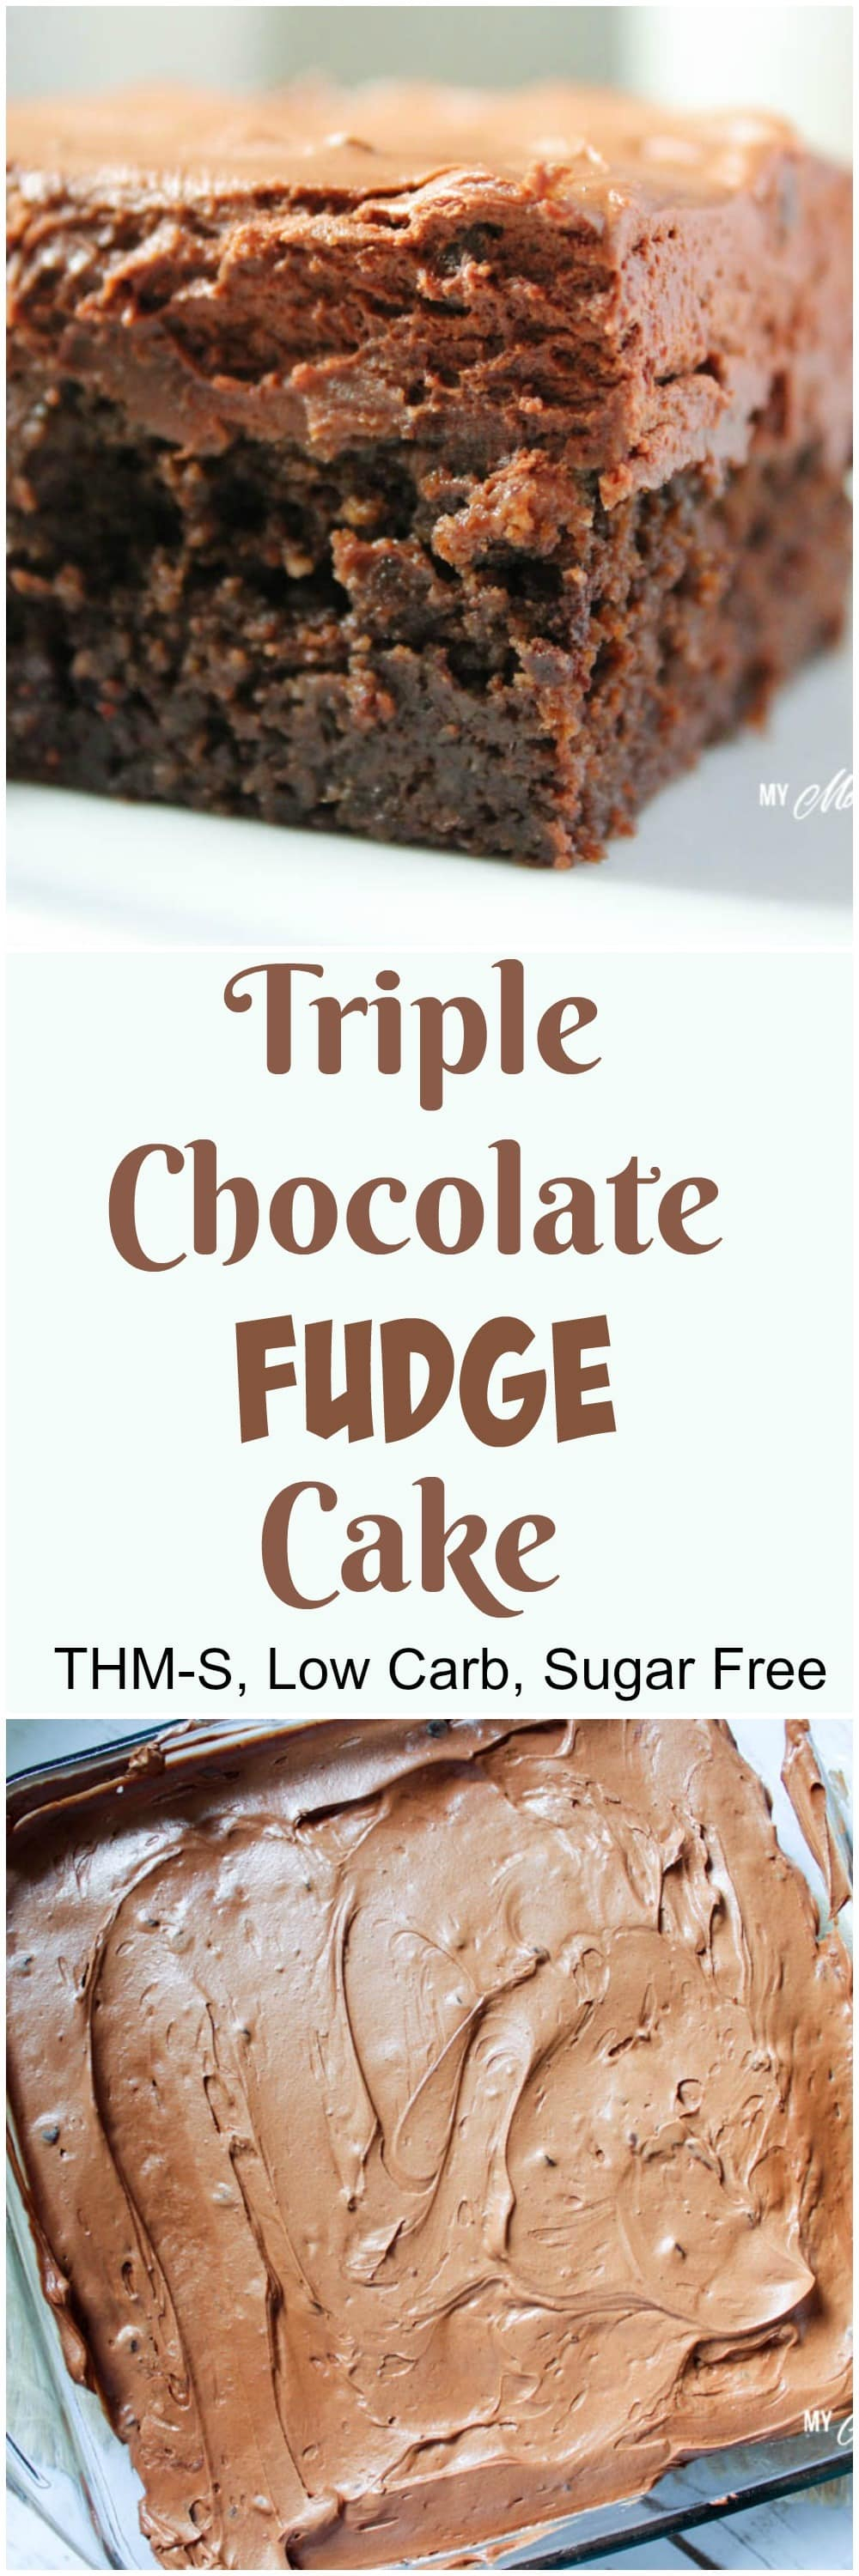 Triple Chocolate Fudge Cake (Low Carb, Sugar Free, THM-S)